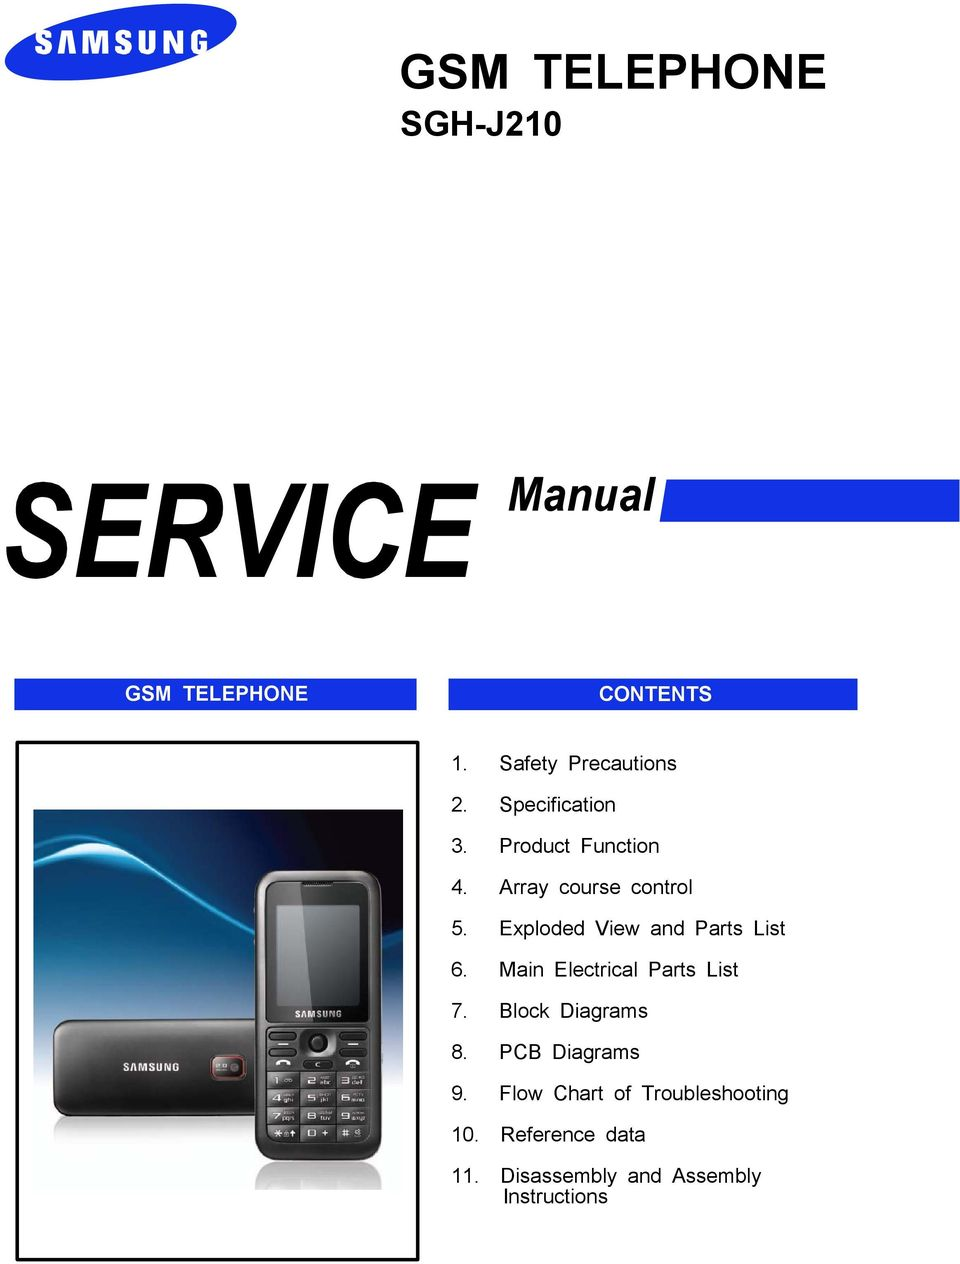 GSM TELEPHONE SGH-J210 GSM TELEPHONE CONTENTS  1  Safety Precautions